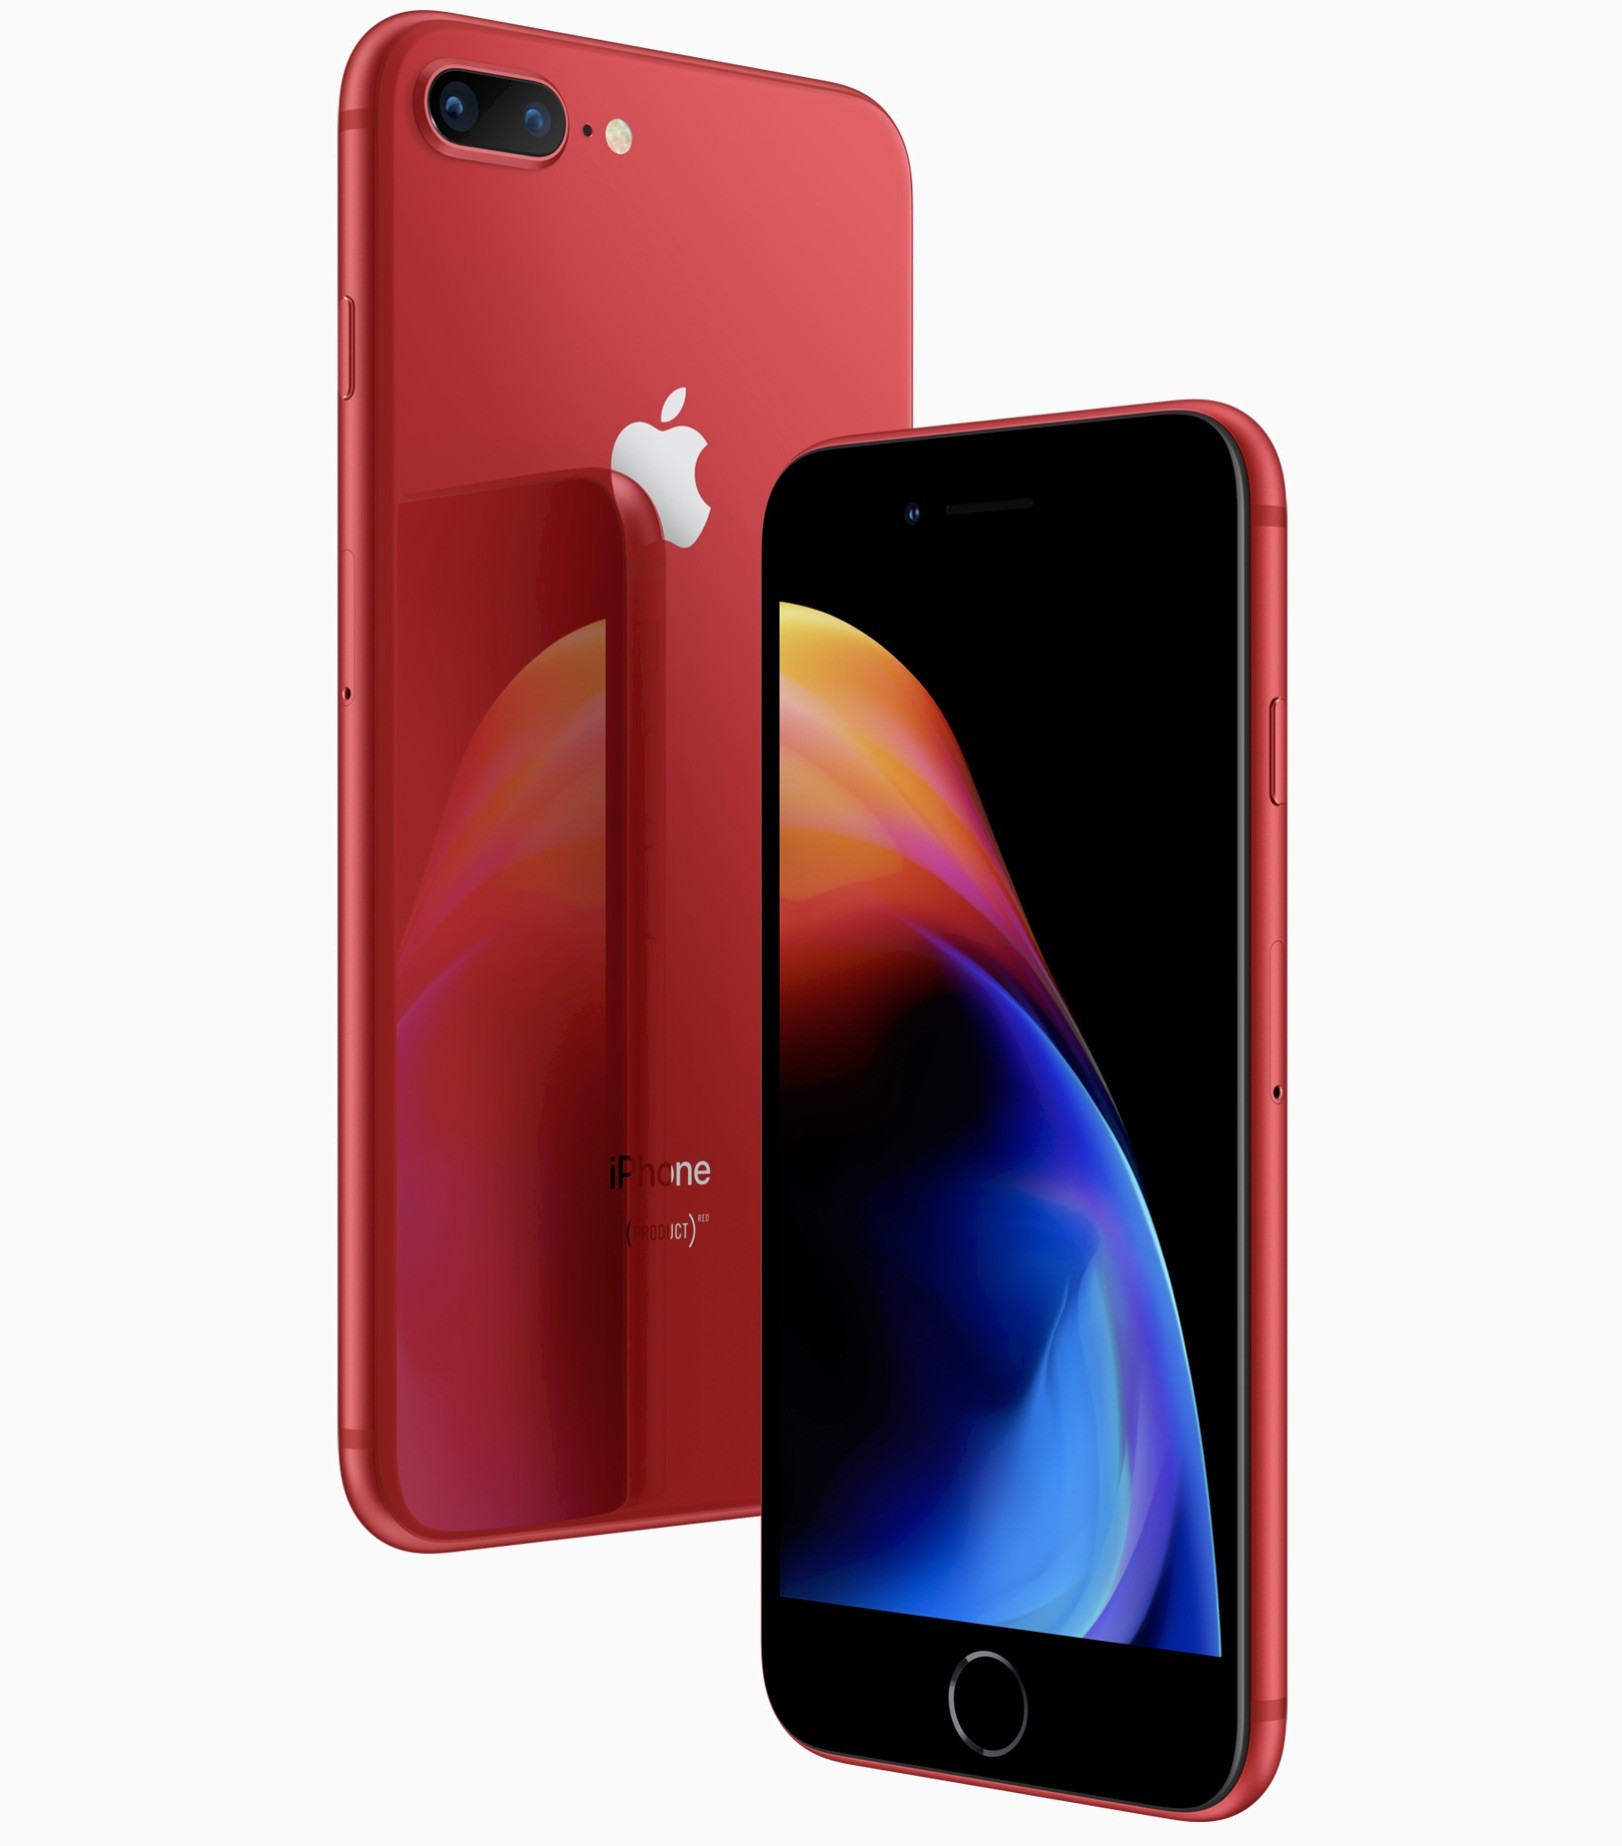 iPhone 8, iPhone 8 Plus (PRODUCT)RED Special Edition Now ...